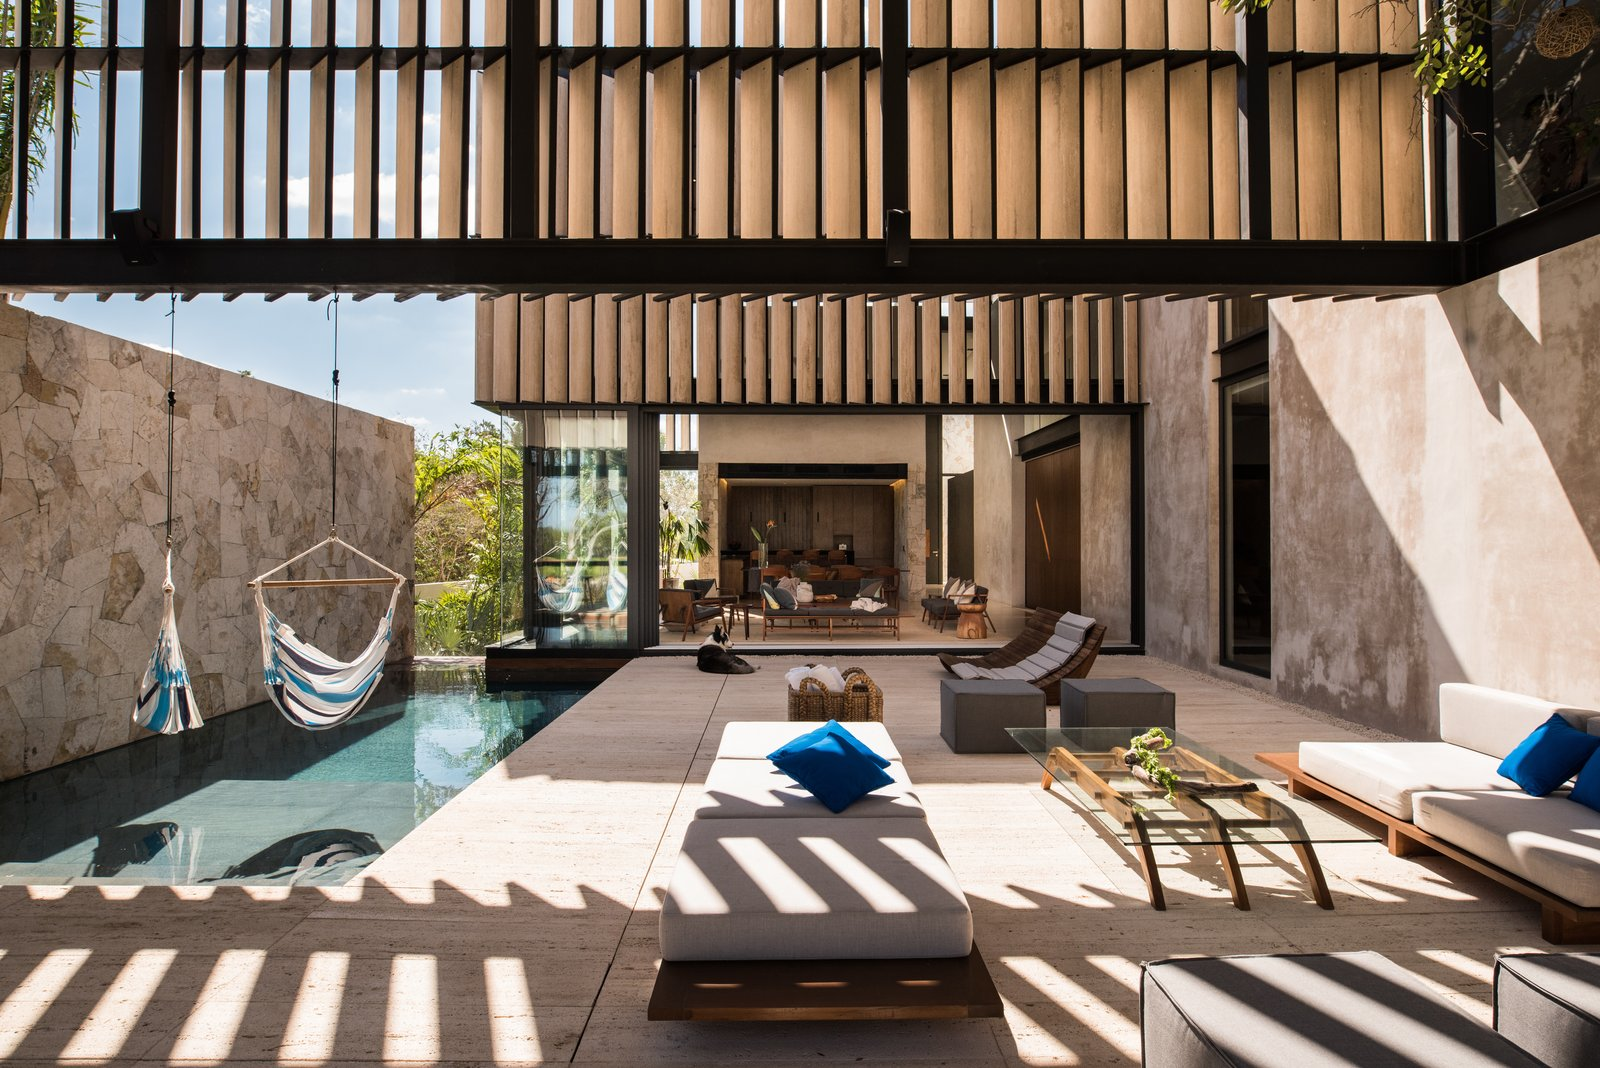 Terrace Tagged: Outdoor, Back Yard, Stone Patio, Porch, Deck, Standard Construction Pools, Tubs, Shower, and Large Patio, Porch, Deck.  Casa Chaaltun by tescala